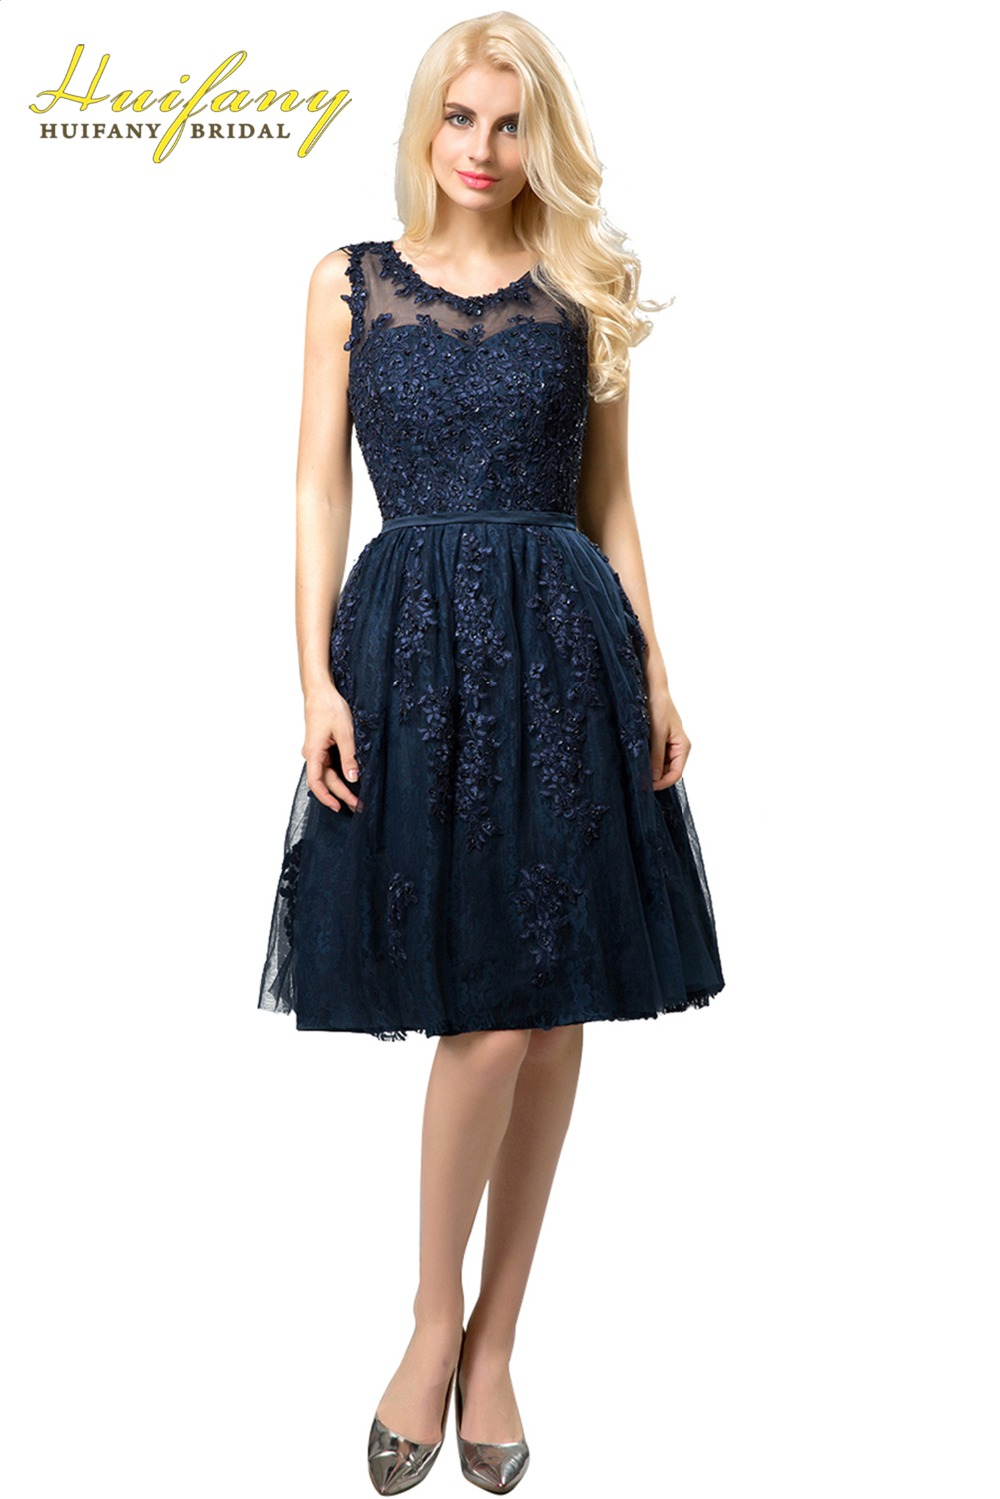 2017 real short bridesmaid dresses navy blue lace